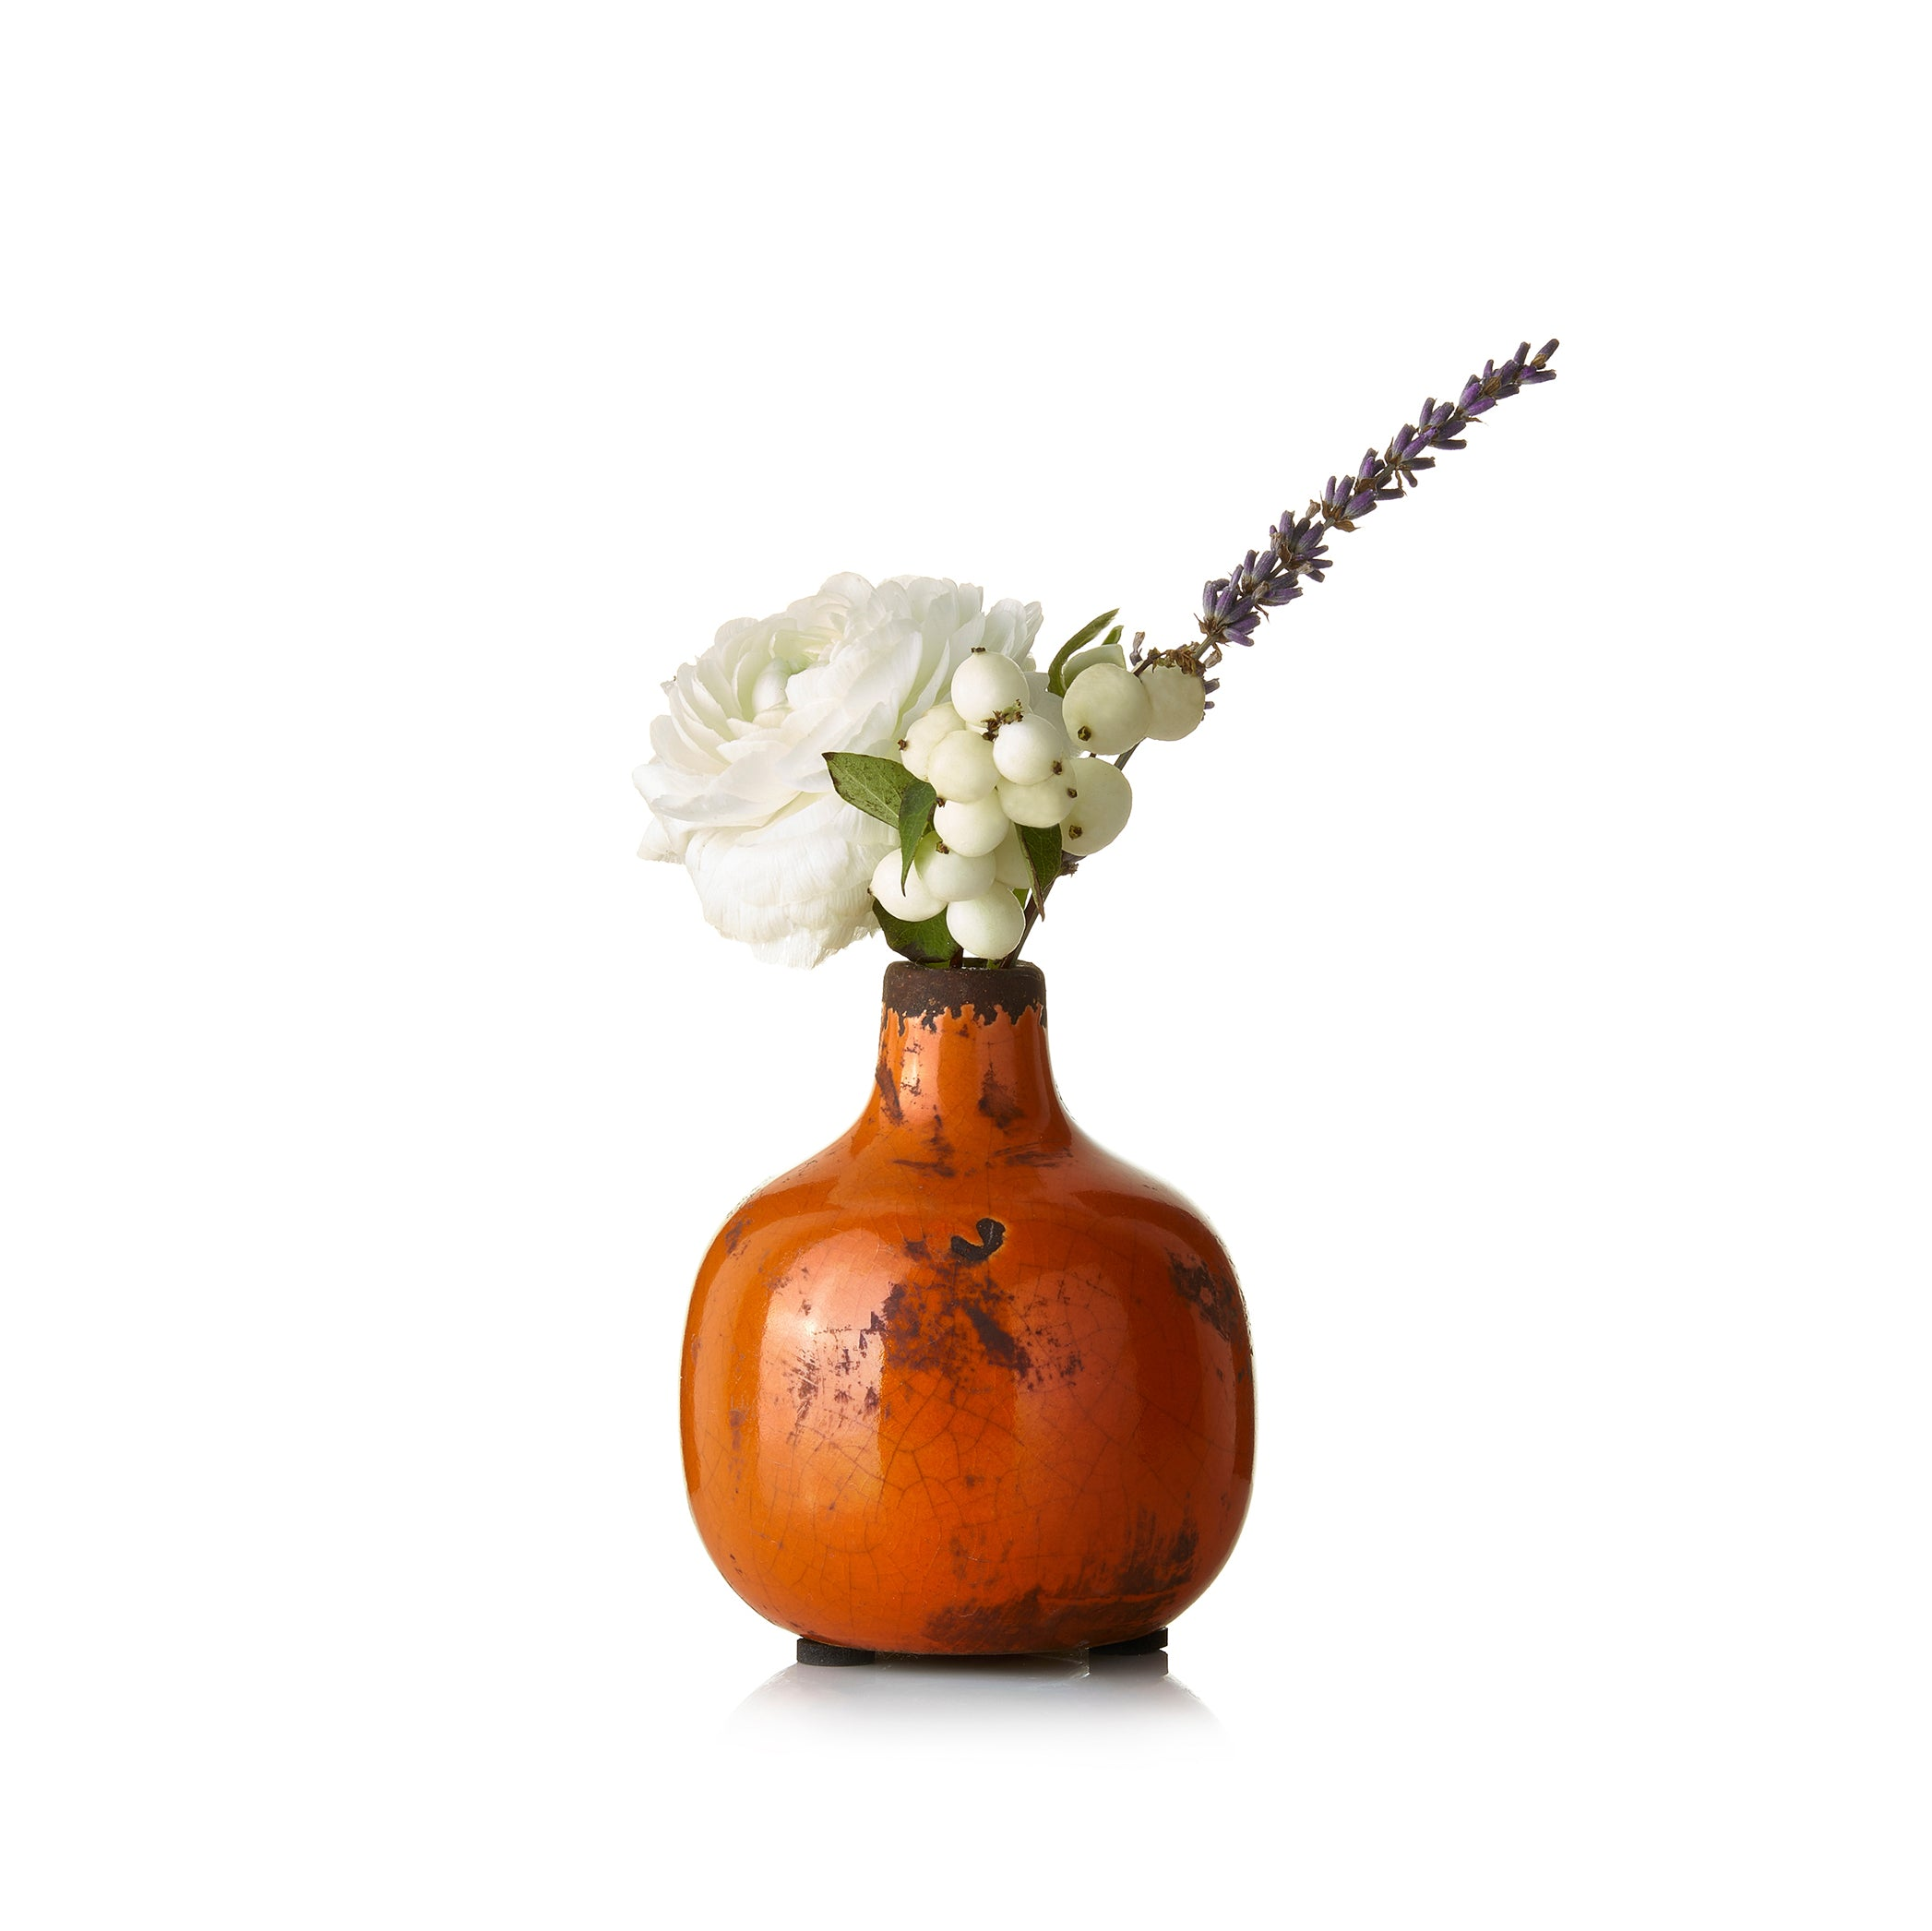 Ceramic Crackled Vase in Orange